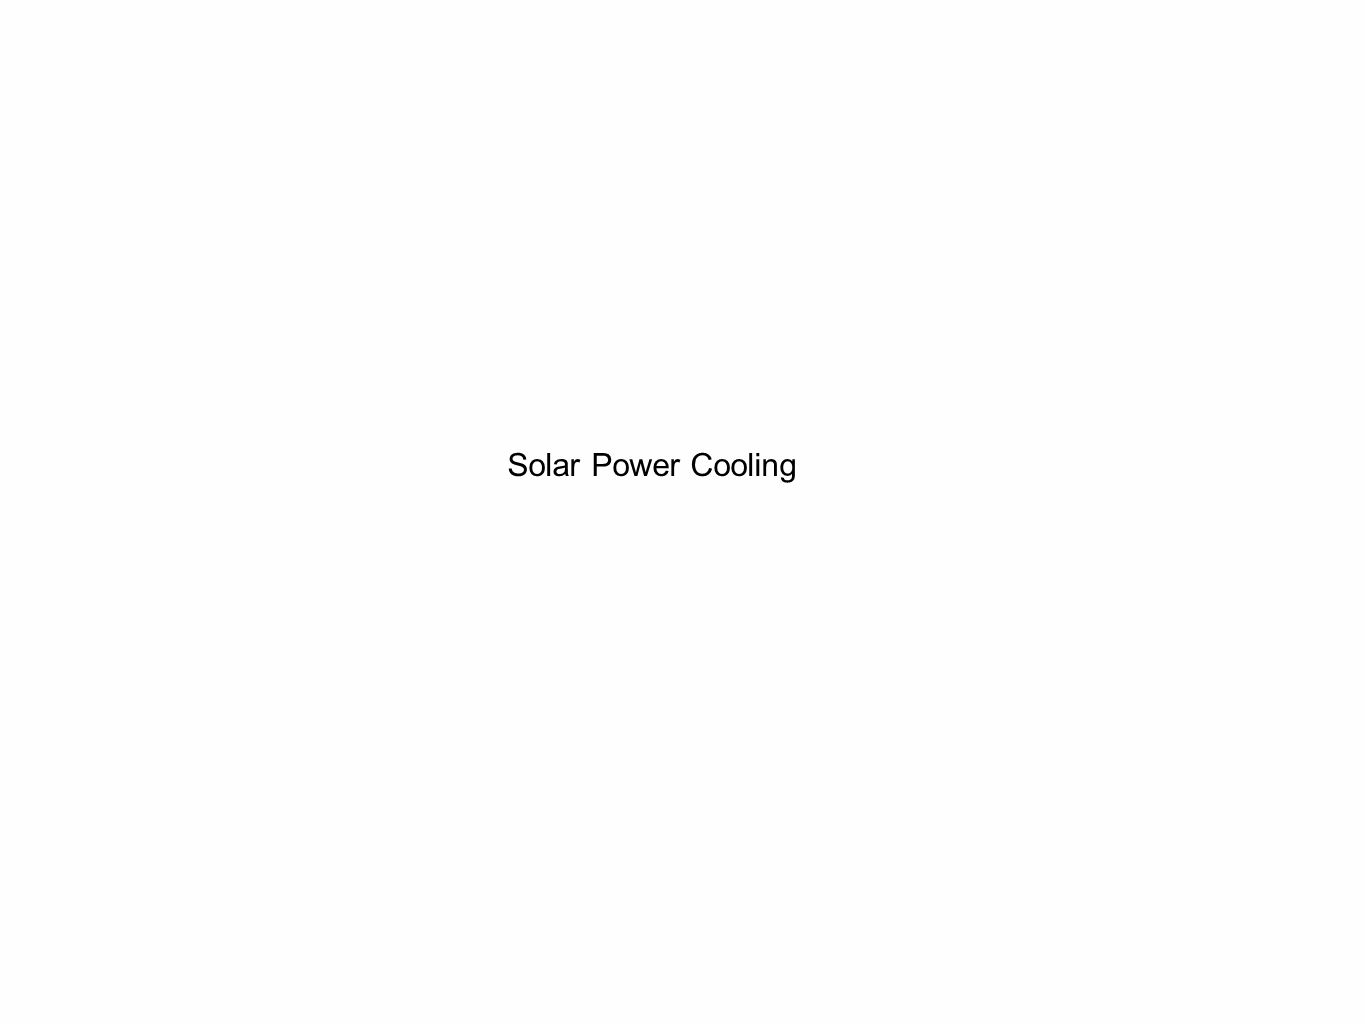 Solar Power Cooling